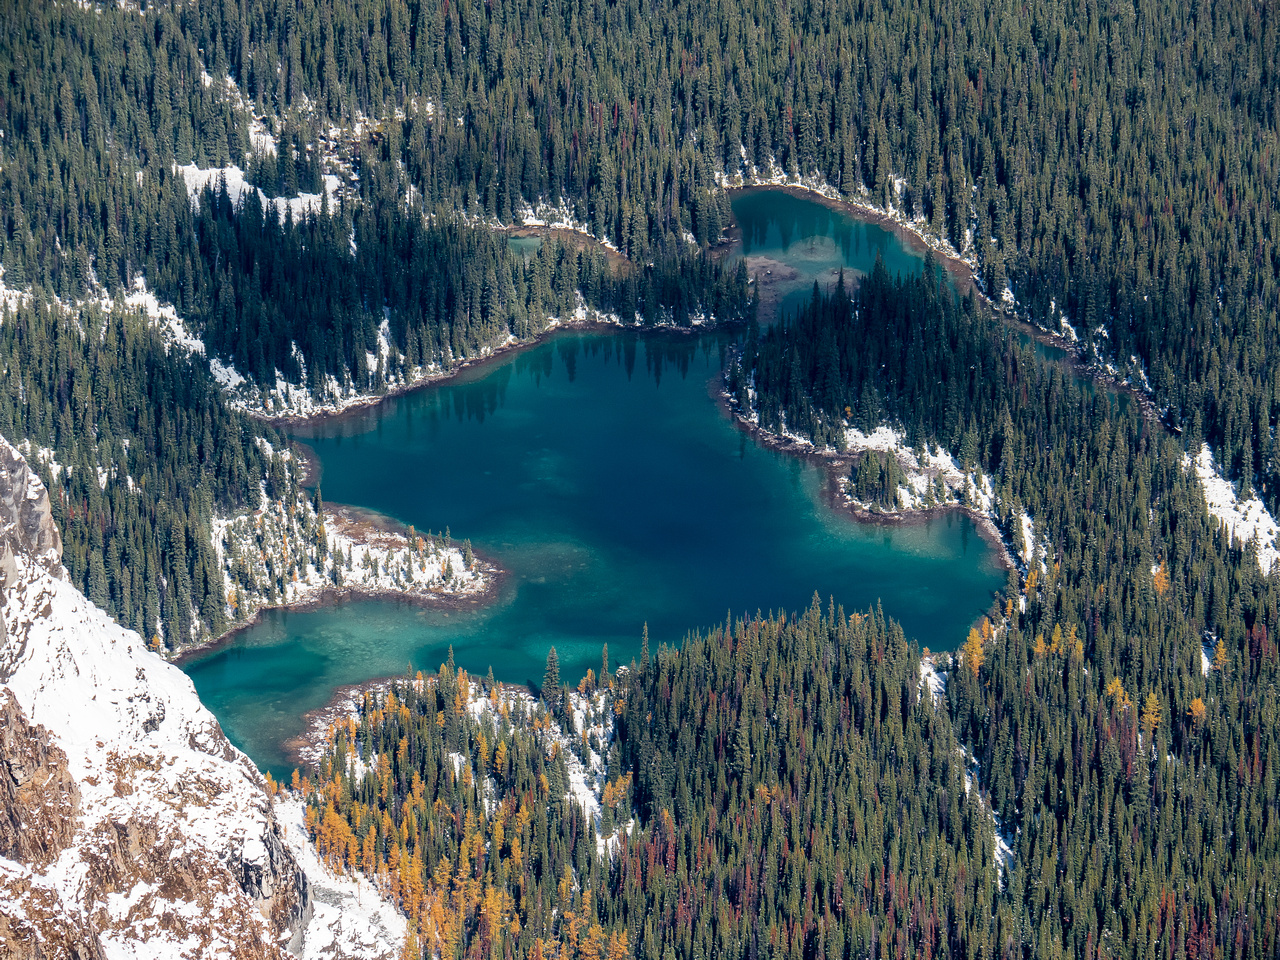 Linda Lake is slightly further north than the Morning Glory Lakes and drains into Duchesnay Creek.